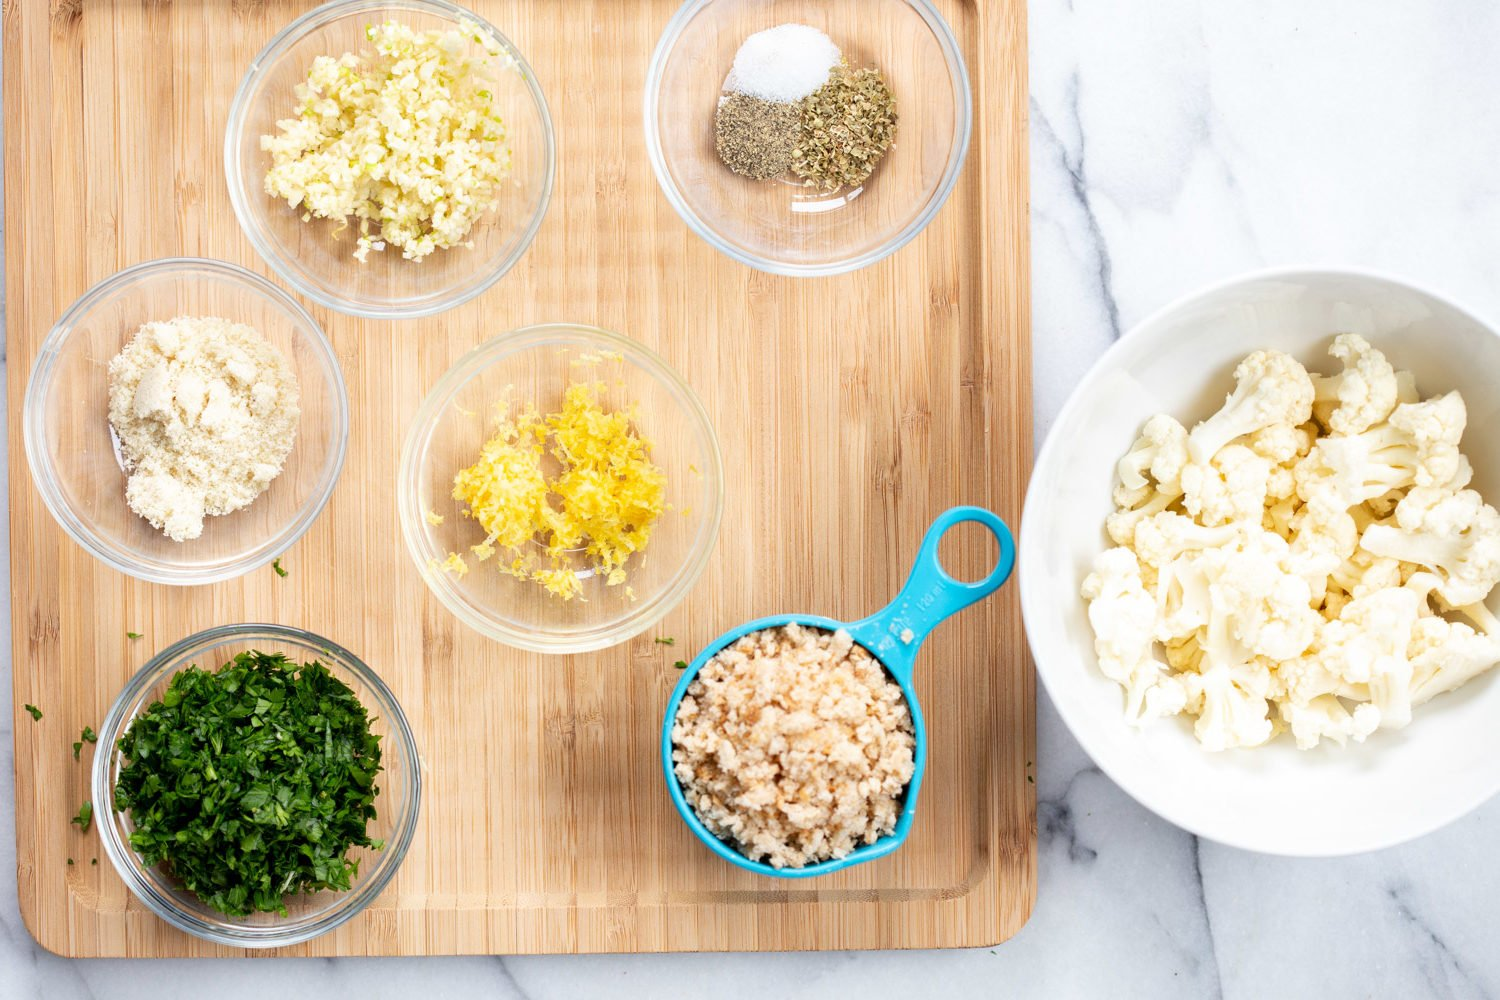 Ingredients for Spaghetti with toasted garlic breadcrumbs in bowls